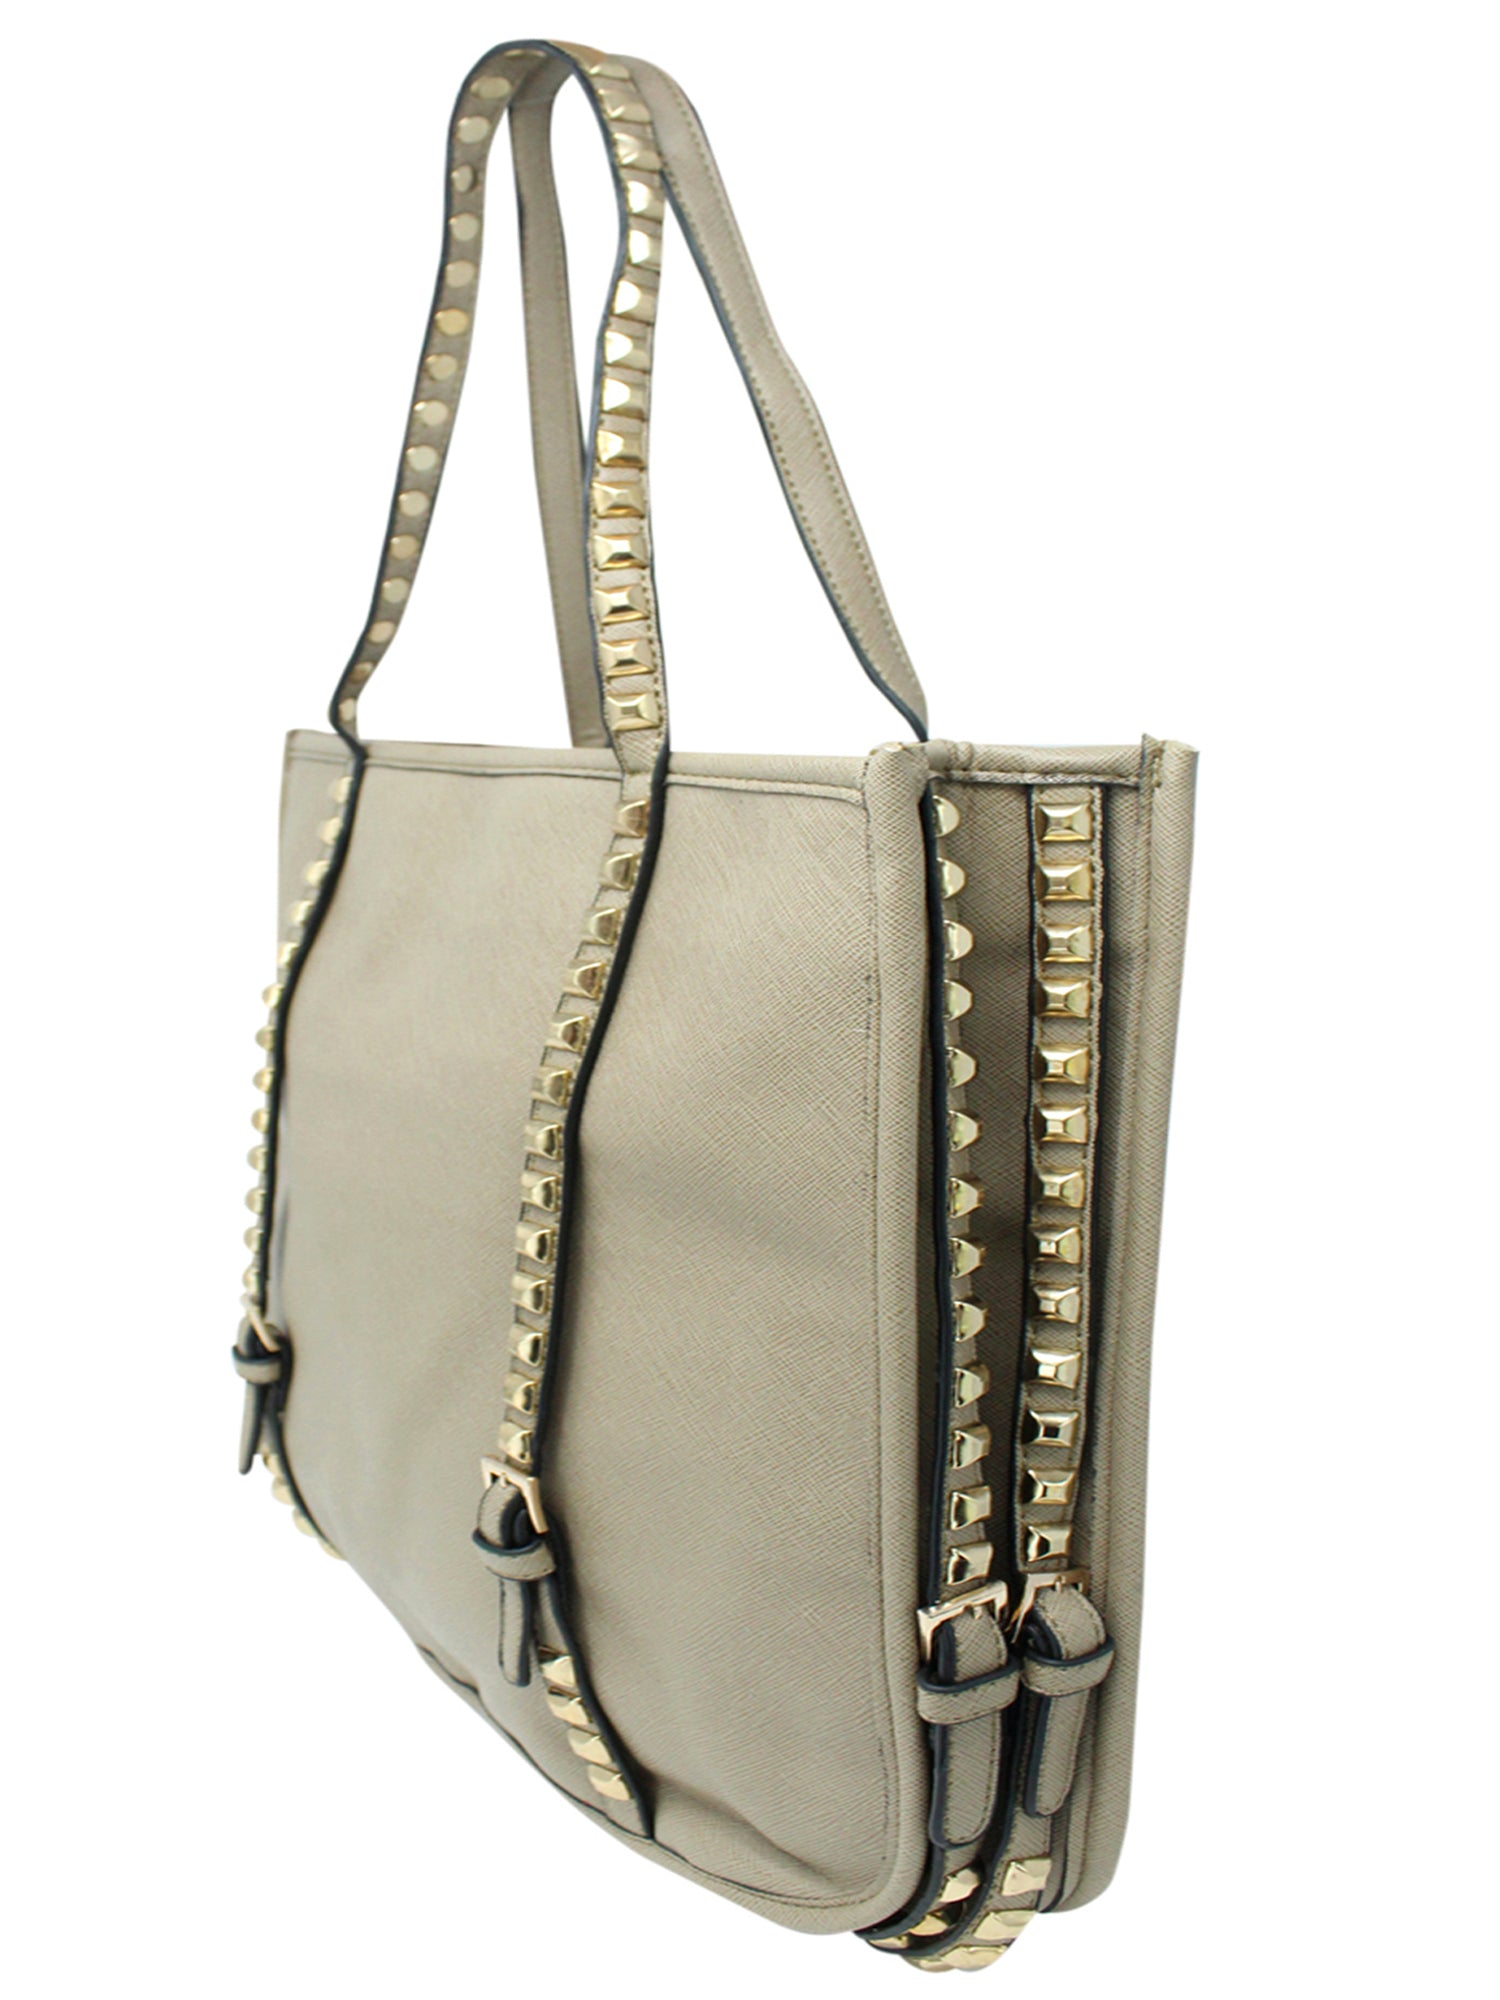 Tote Bag With Long Studded Straps